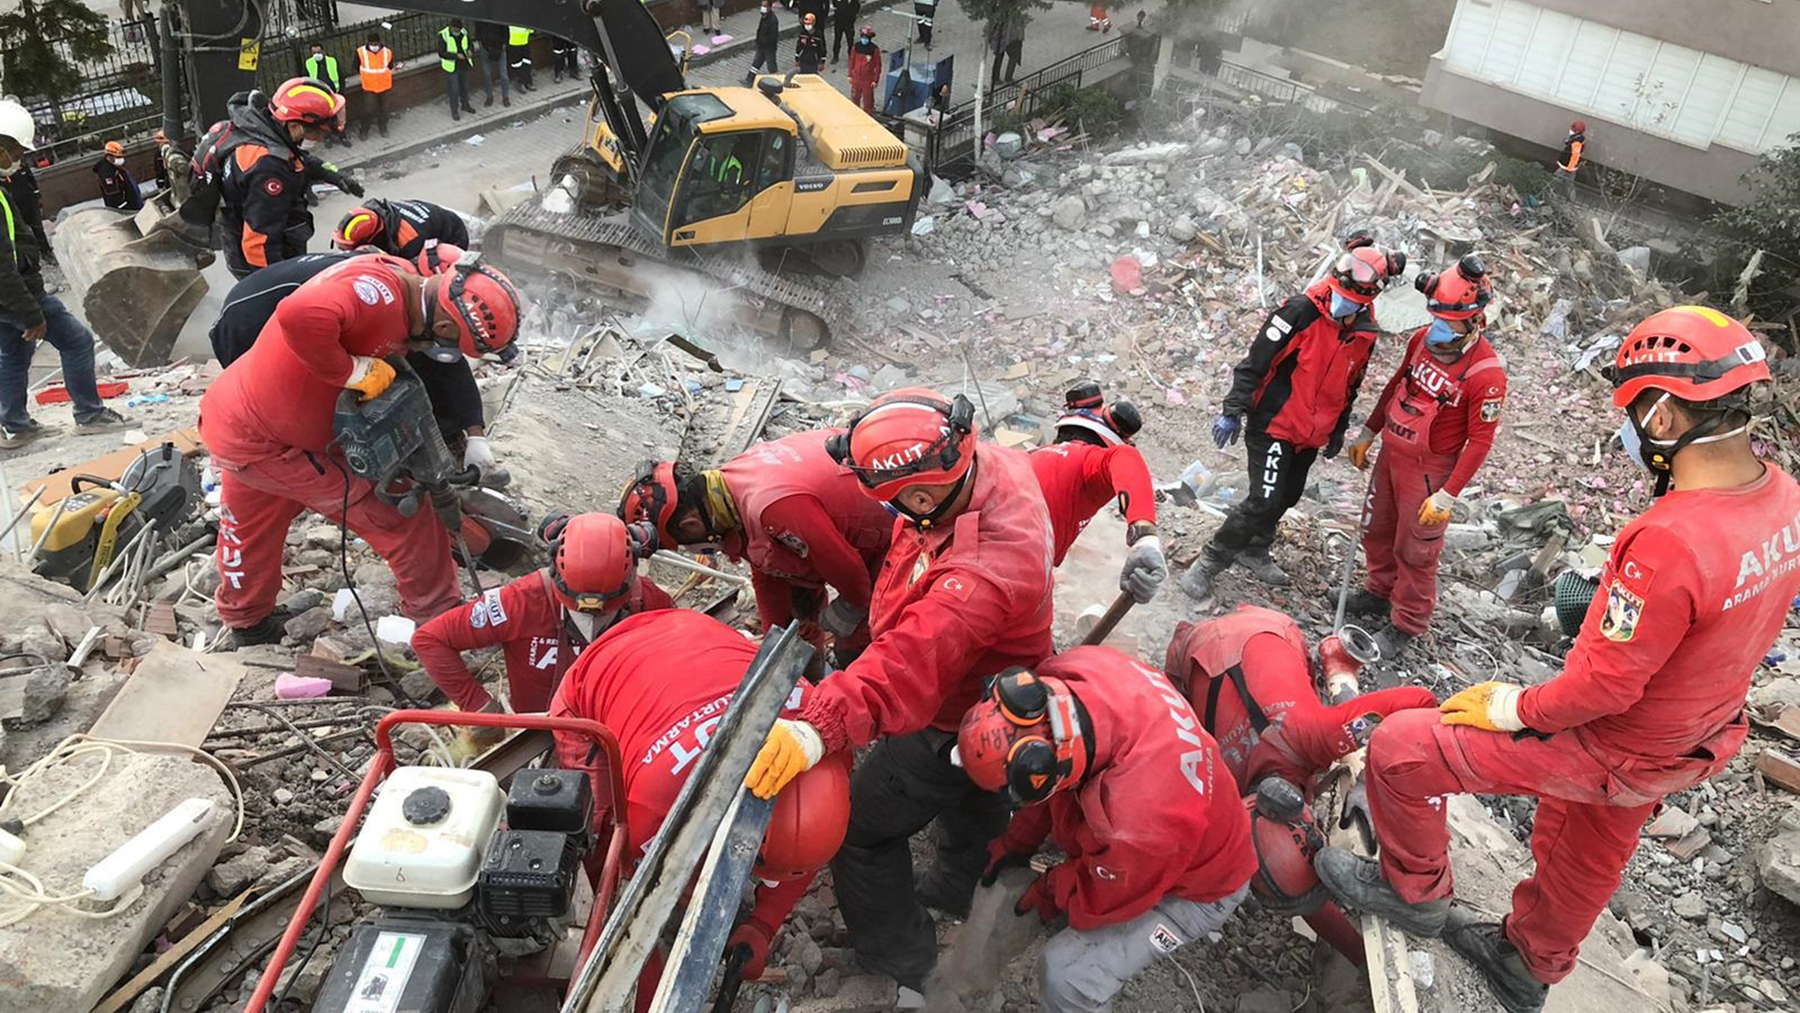 An AKUT search-and-rescue team works in the ruins of a building destroyed by the October 30 earthquake. (Photo courtesy of AKUT)